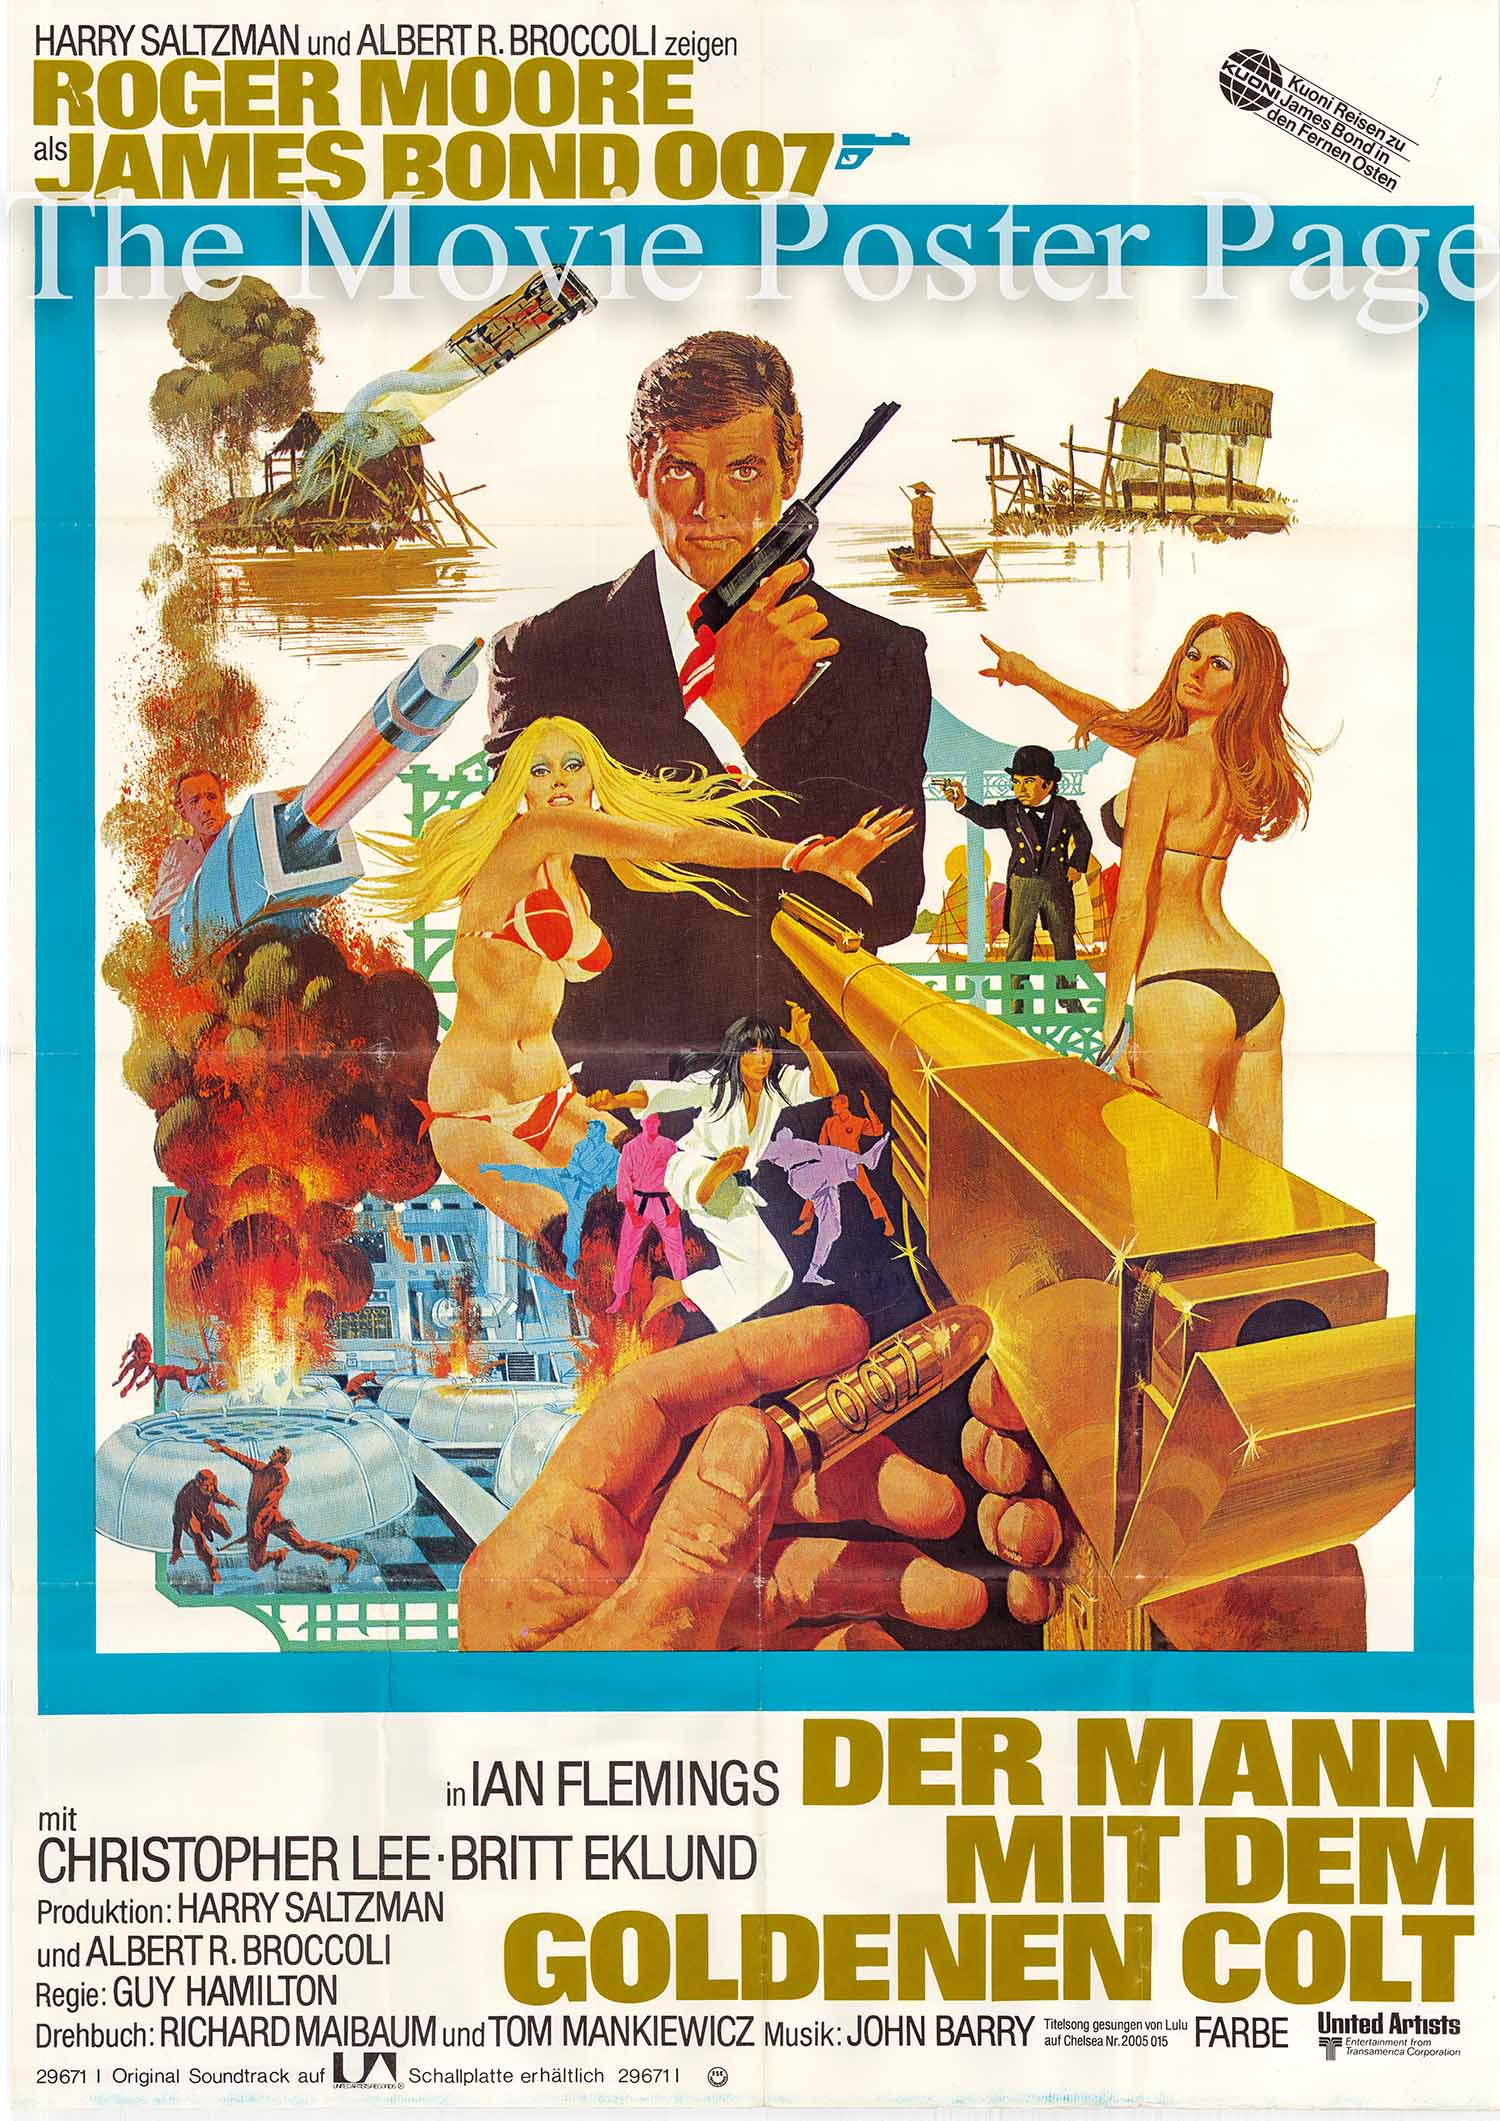 This is a German two-sheet promotional poster made to promote the 1974 Guy Hamilton film The Man with the Golden Gun starring Roger Moore as James Bond.